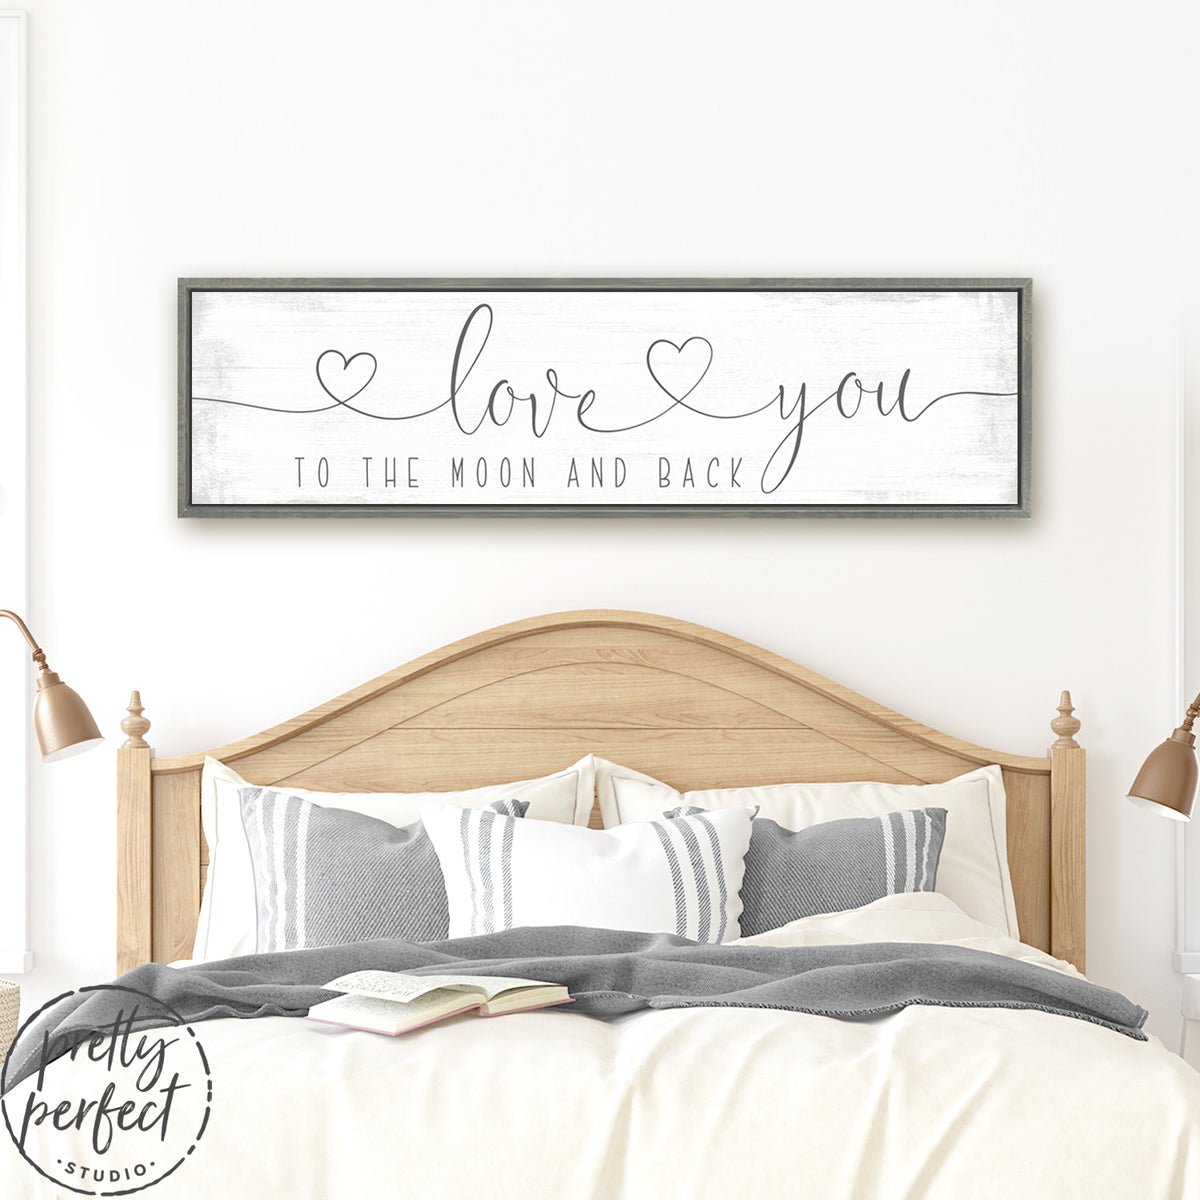 Love You to the Moon and Back Sign With Hearts Over Bed - Pretty Perfect Studio